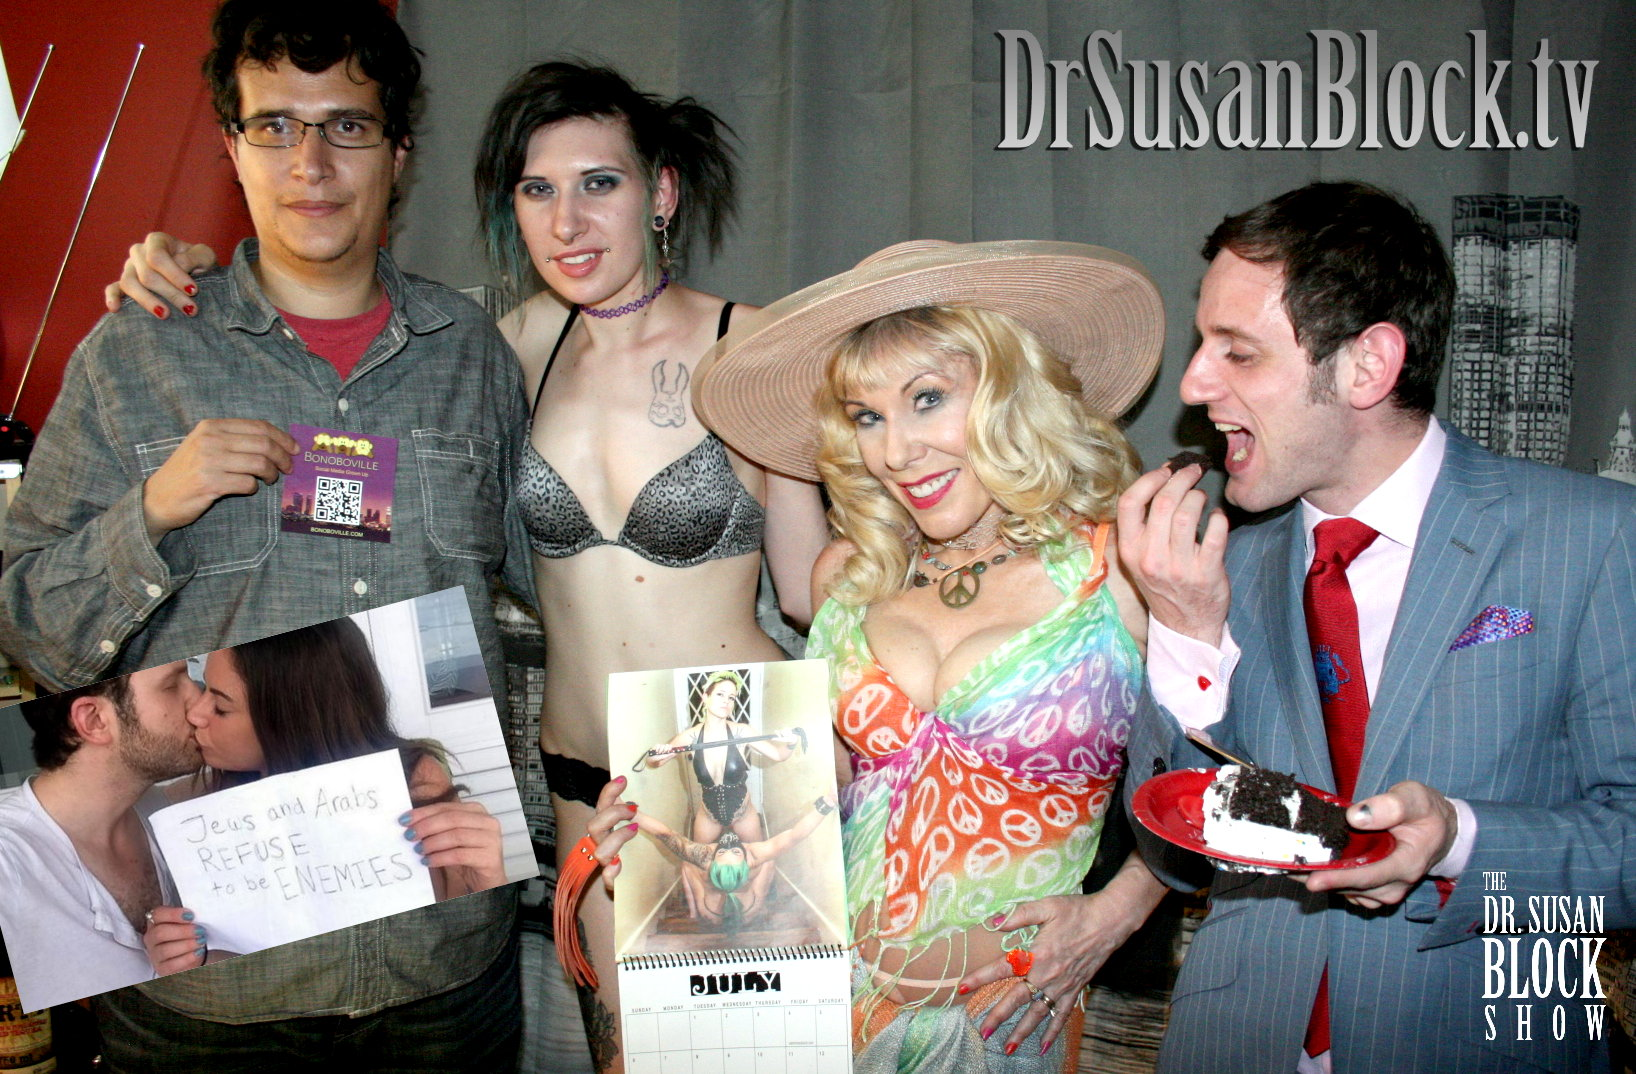 #JewsAndArabsRefuseToBeEnemies hashtag creators Sulome Anderson and BF, Master D holding Bonoboville card, Shadow, Dr. Suzy with A Buttload O' Months, Luzer Twersky with birthday cake. Photo: L'Erotique